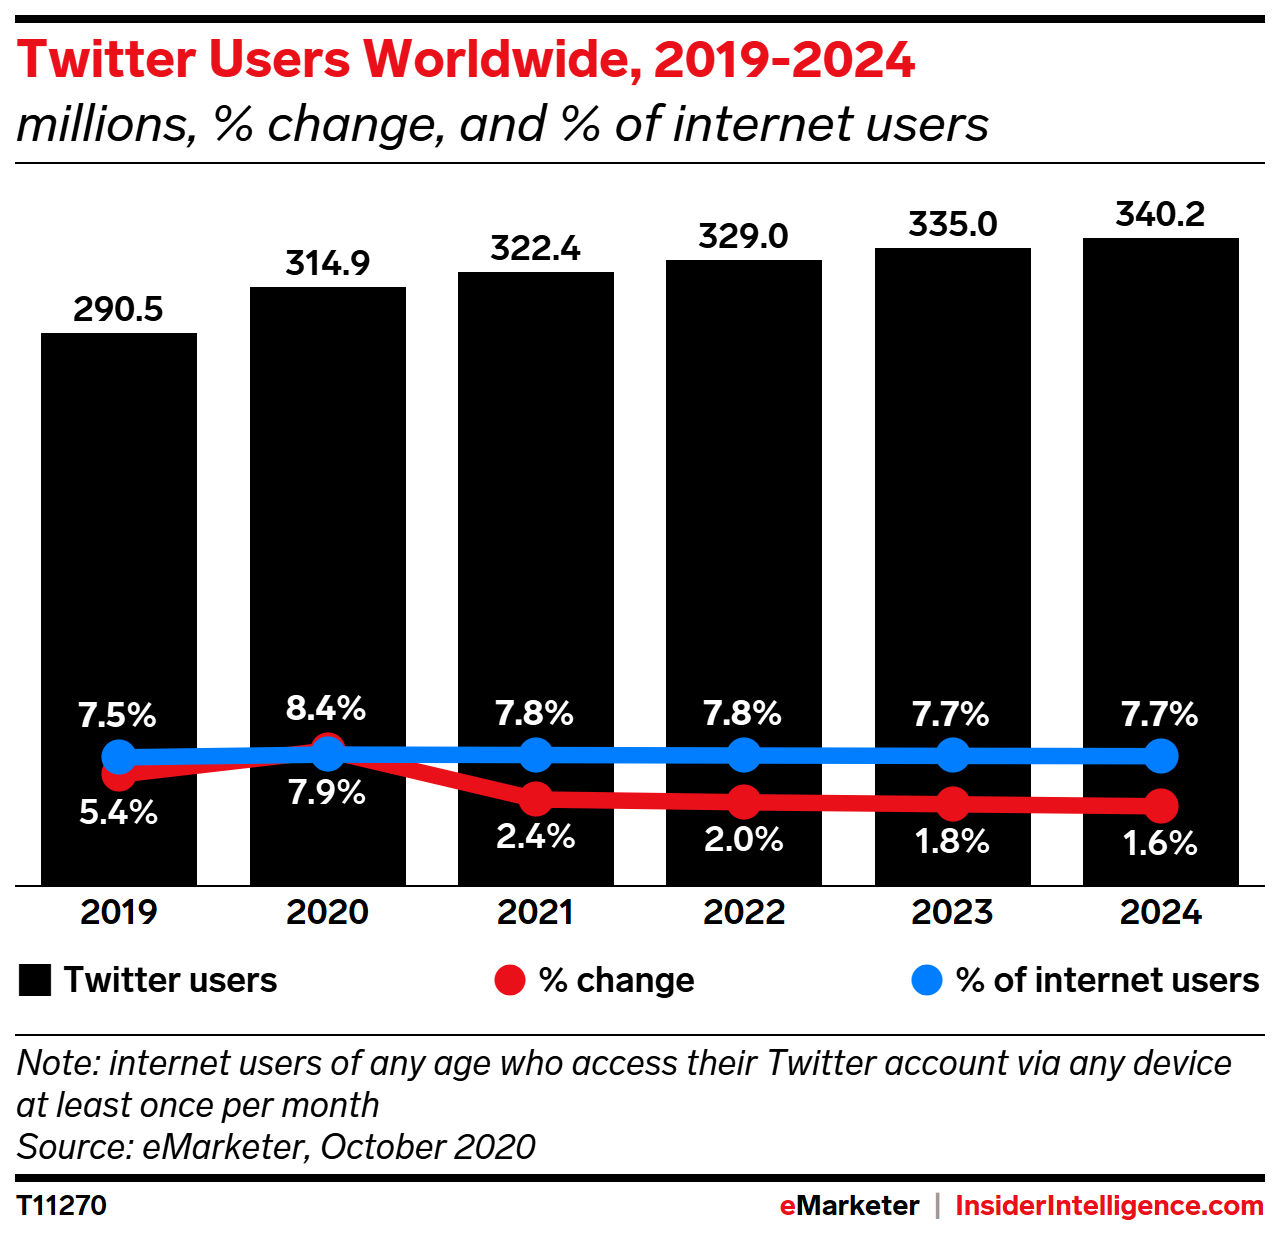 Twitter Users Worldwide, 2019-2024 (millions, % change, and % of internet users)